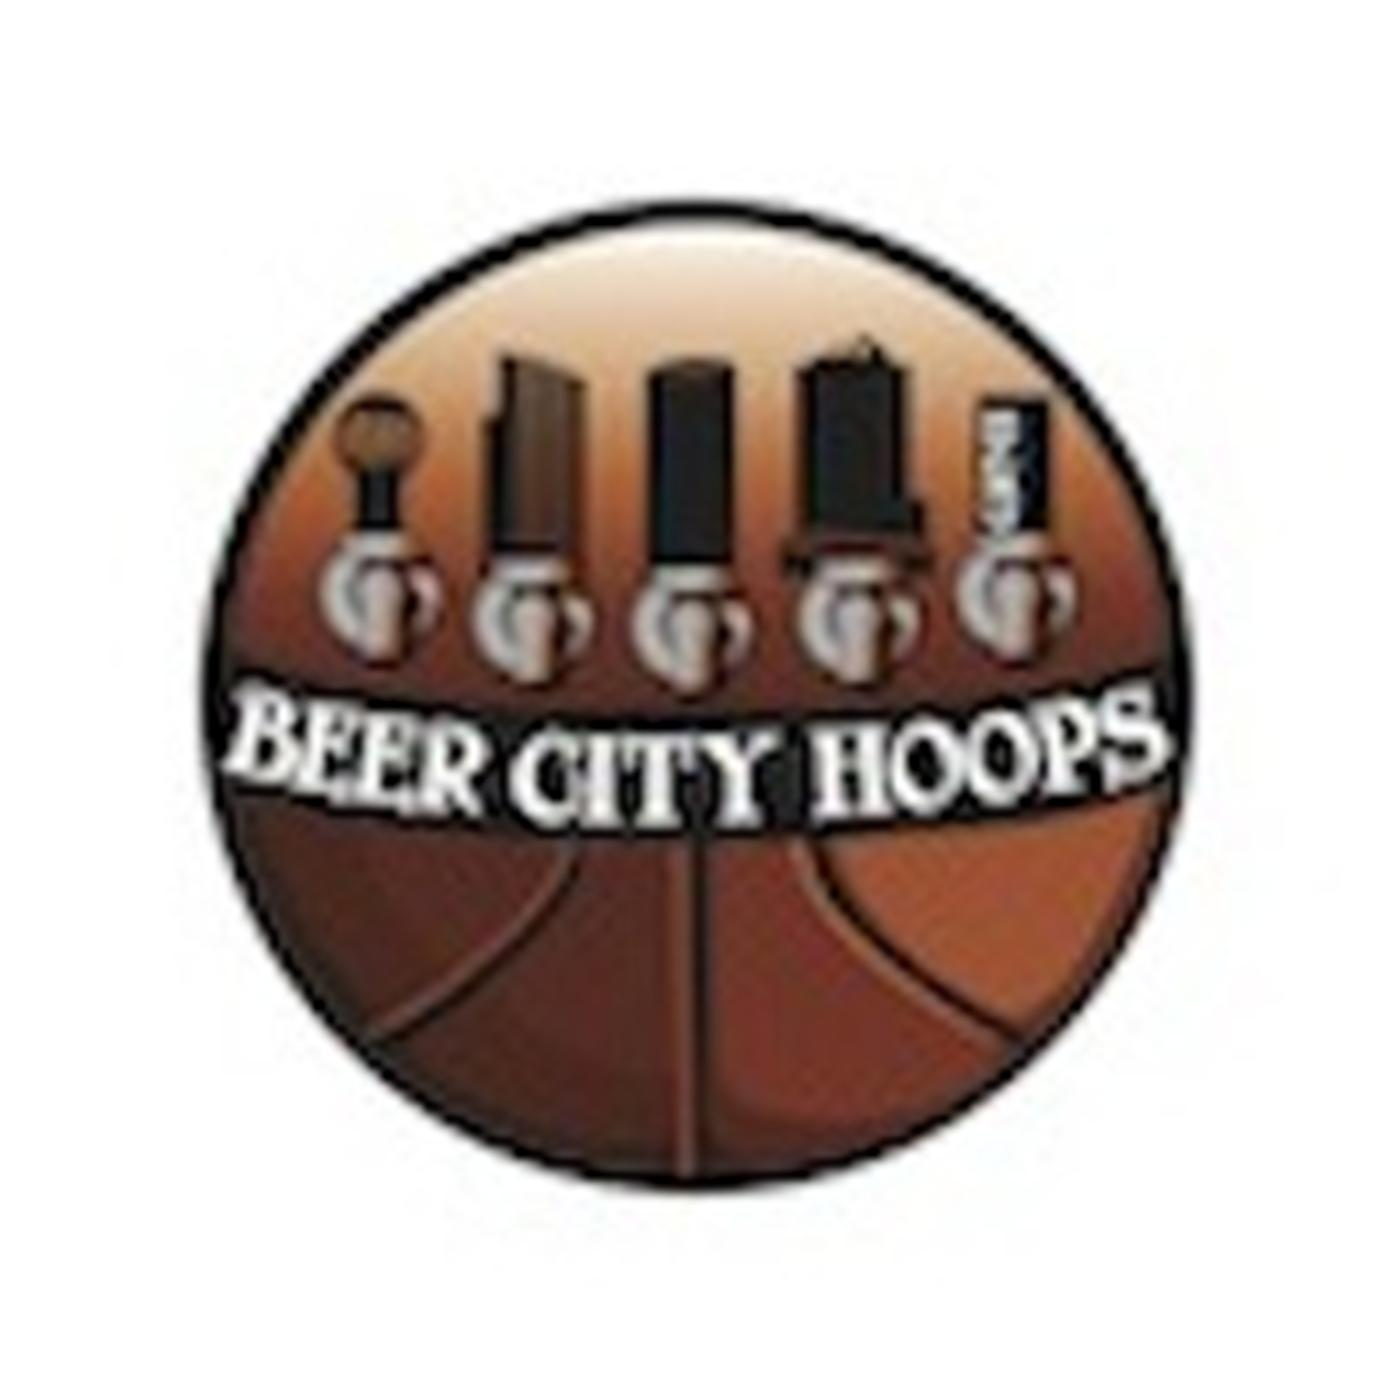 The 3-Point Turn presented by Beer City Hoops